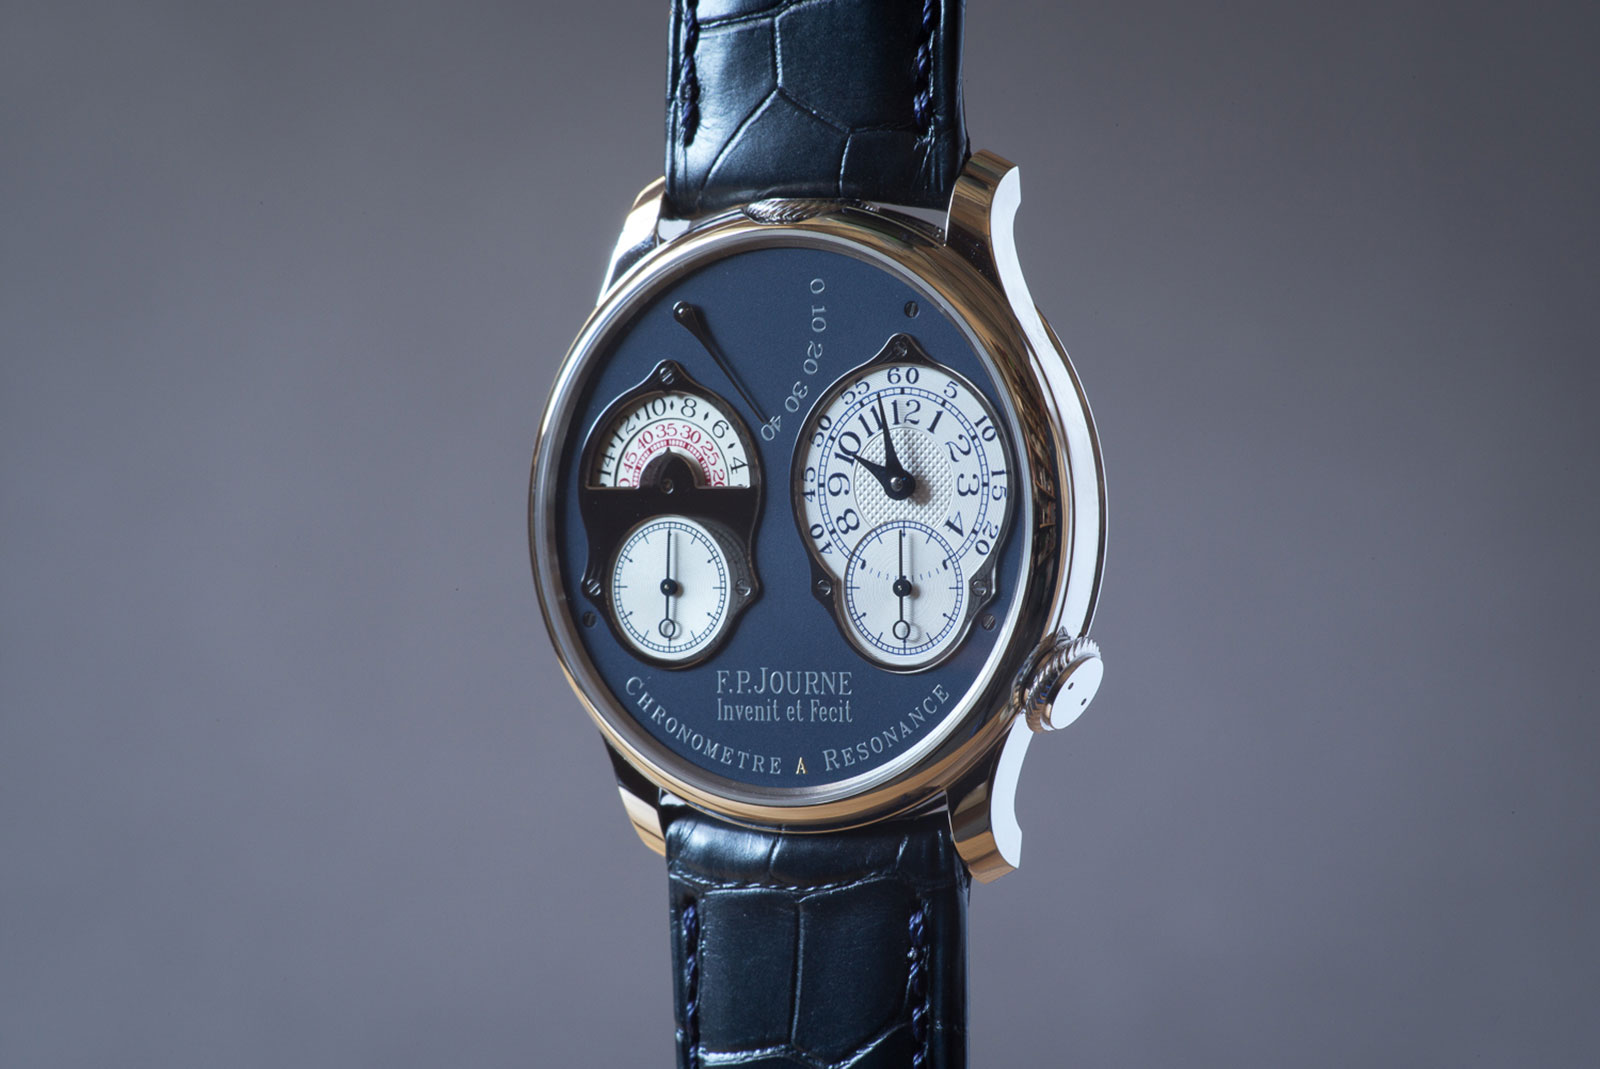 FP Journe Resonance The Armoury Mark Cho 1